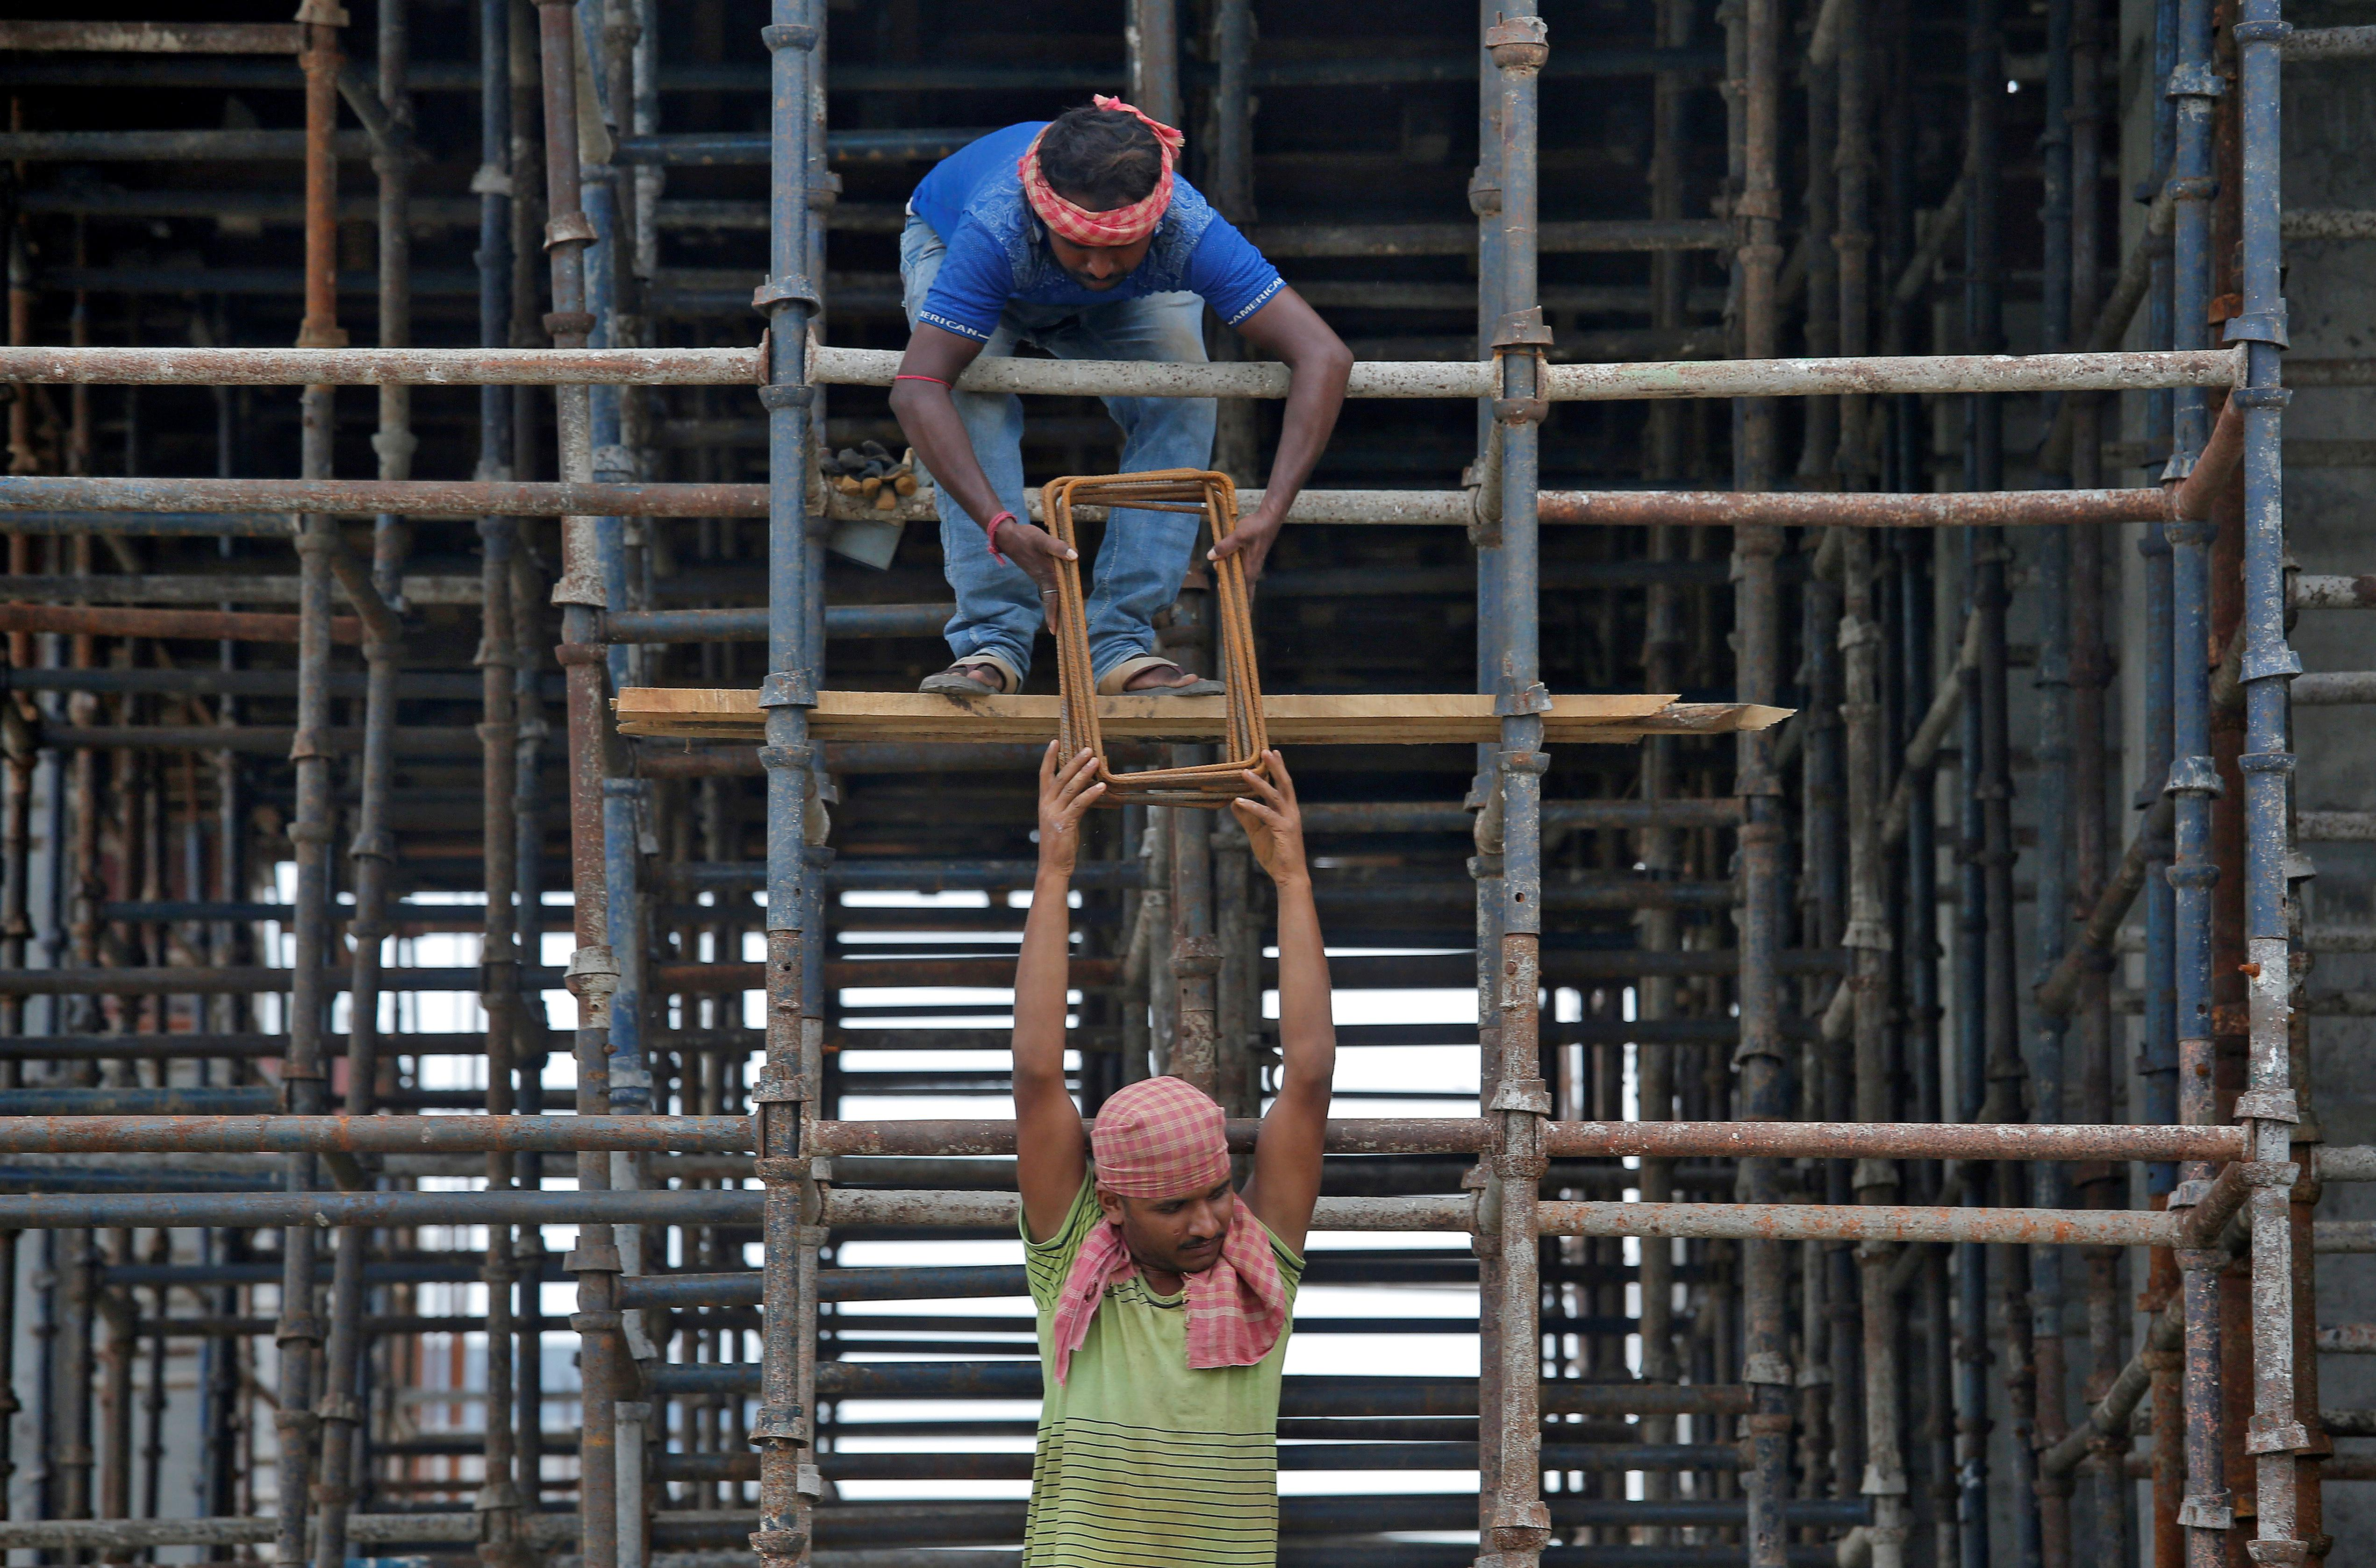 India moves to overhaul labor laws in bid to boost job creation